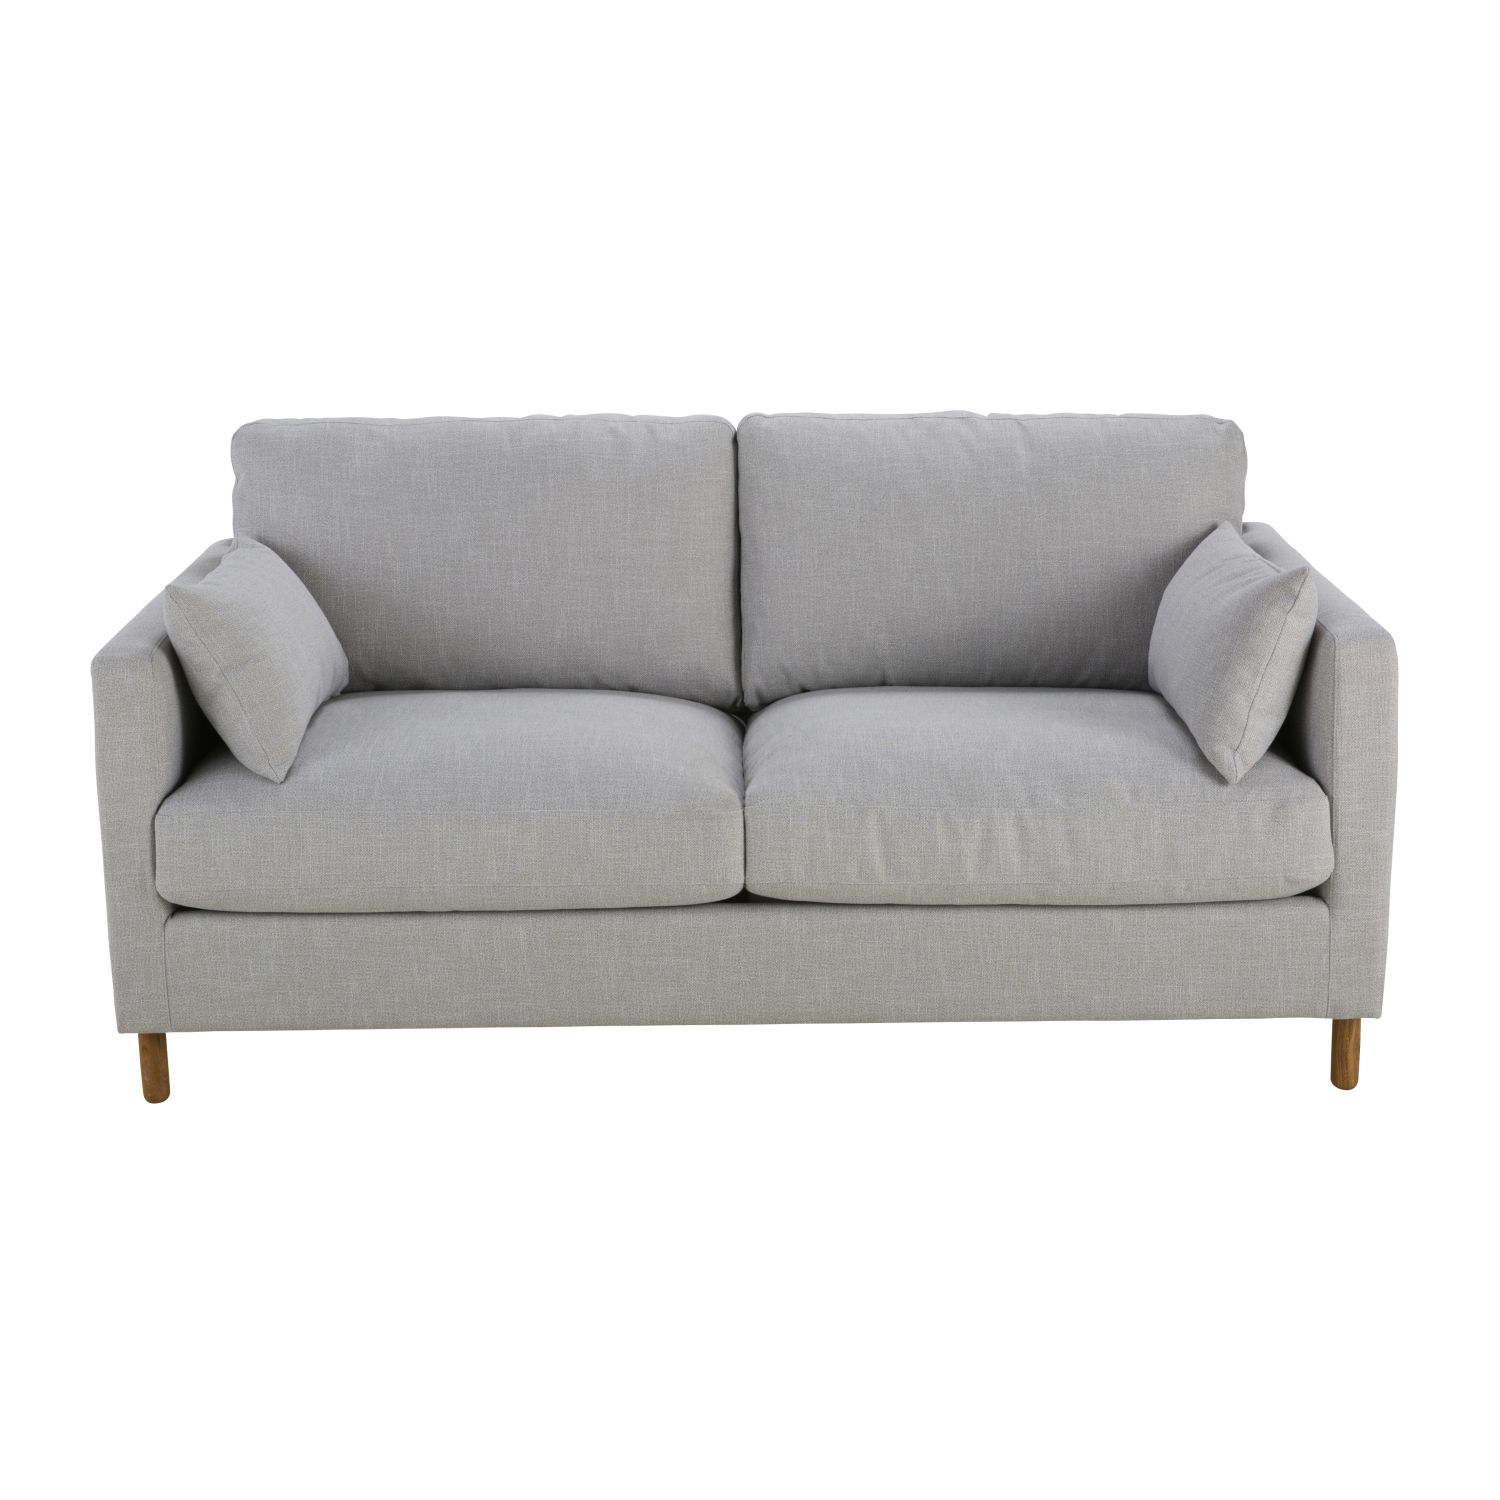 Light grey 3 seater sofa bed maisons du monde - Maison du monde uk ...